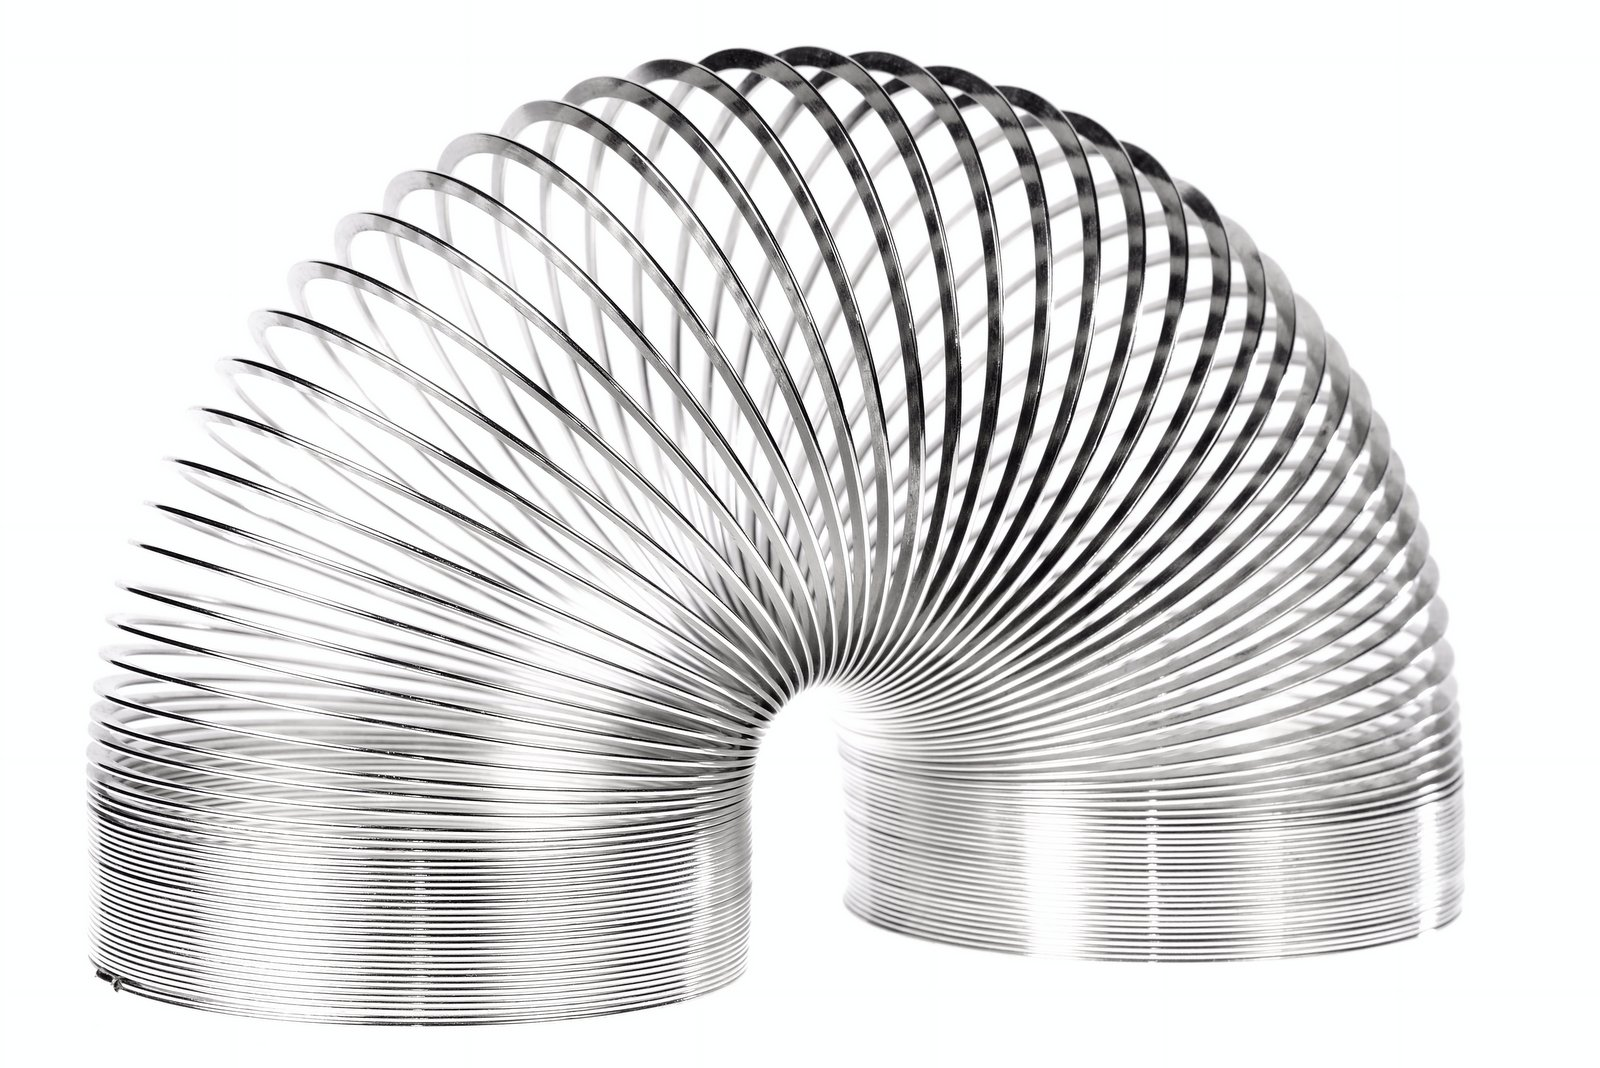 Old-fashioned metal Slinky toy